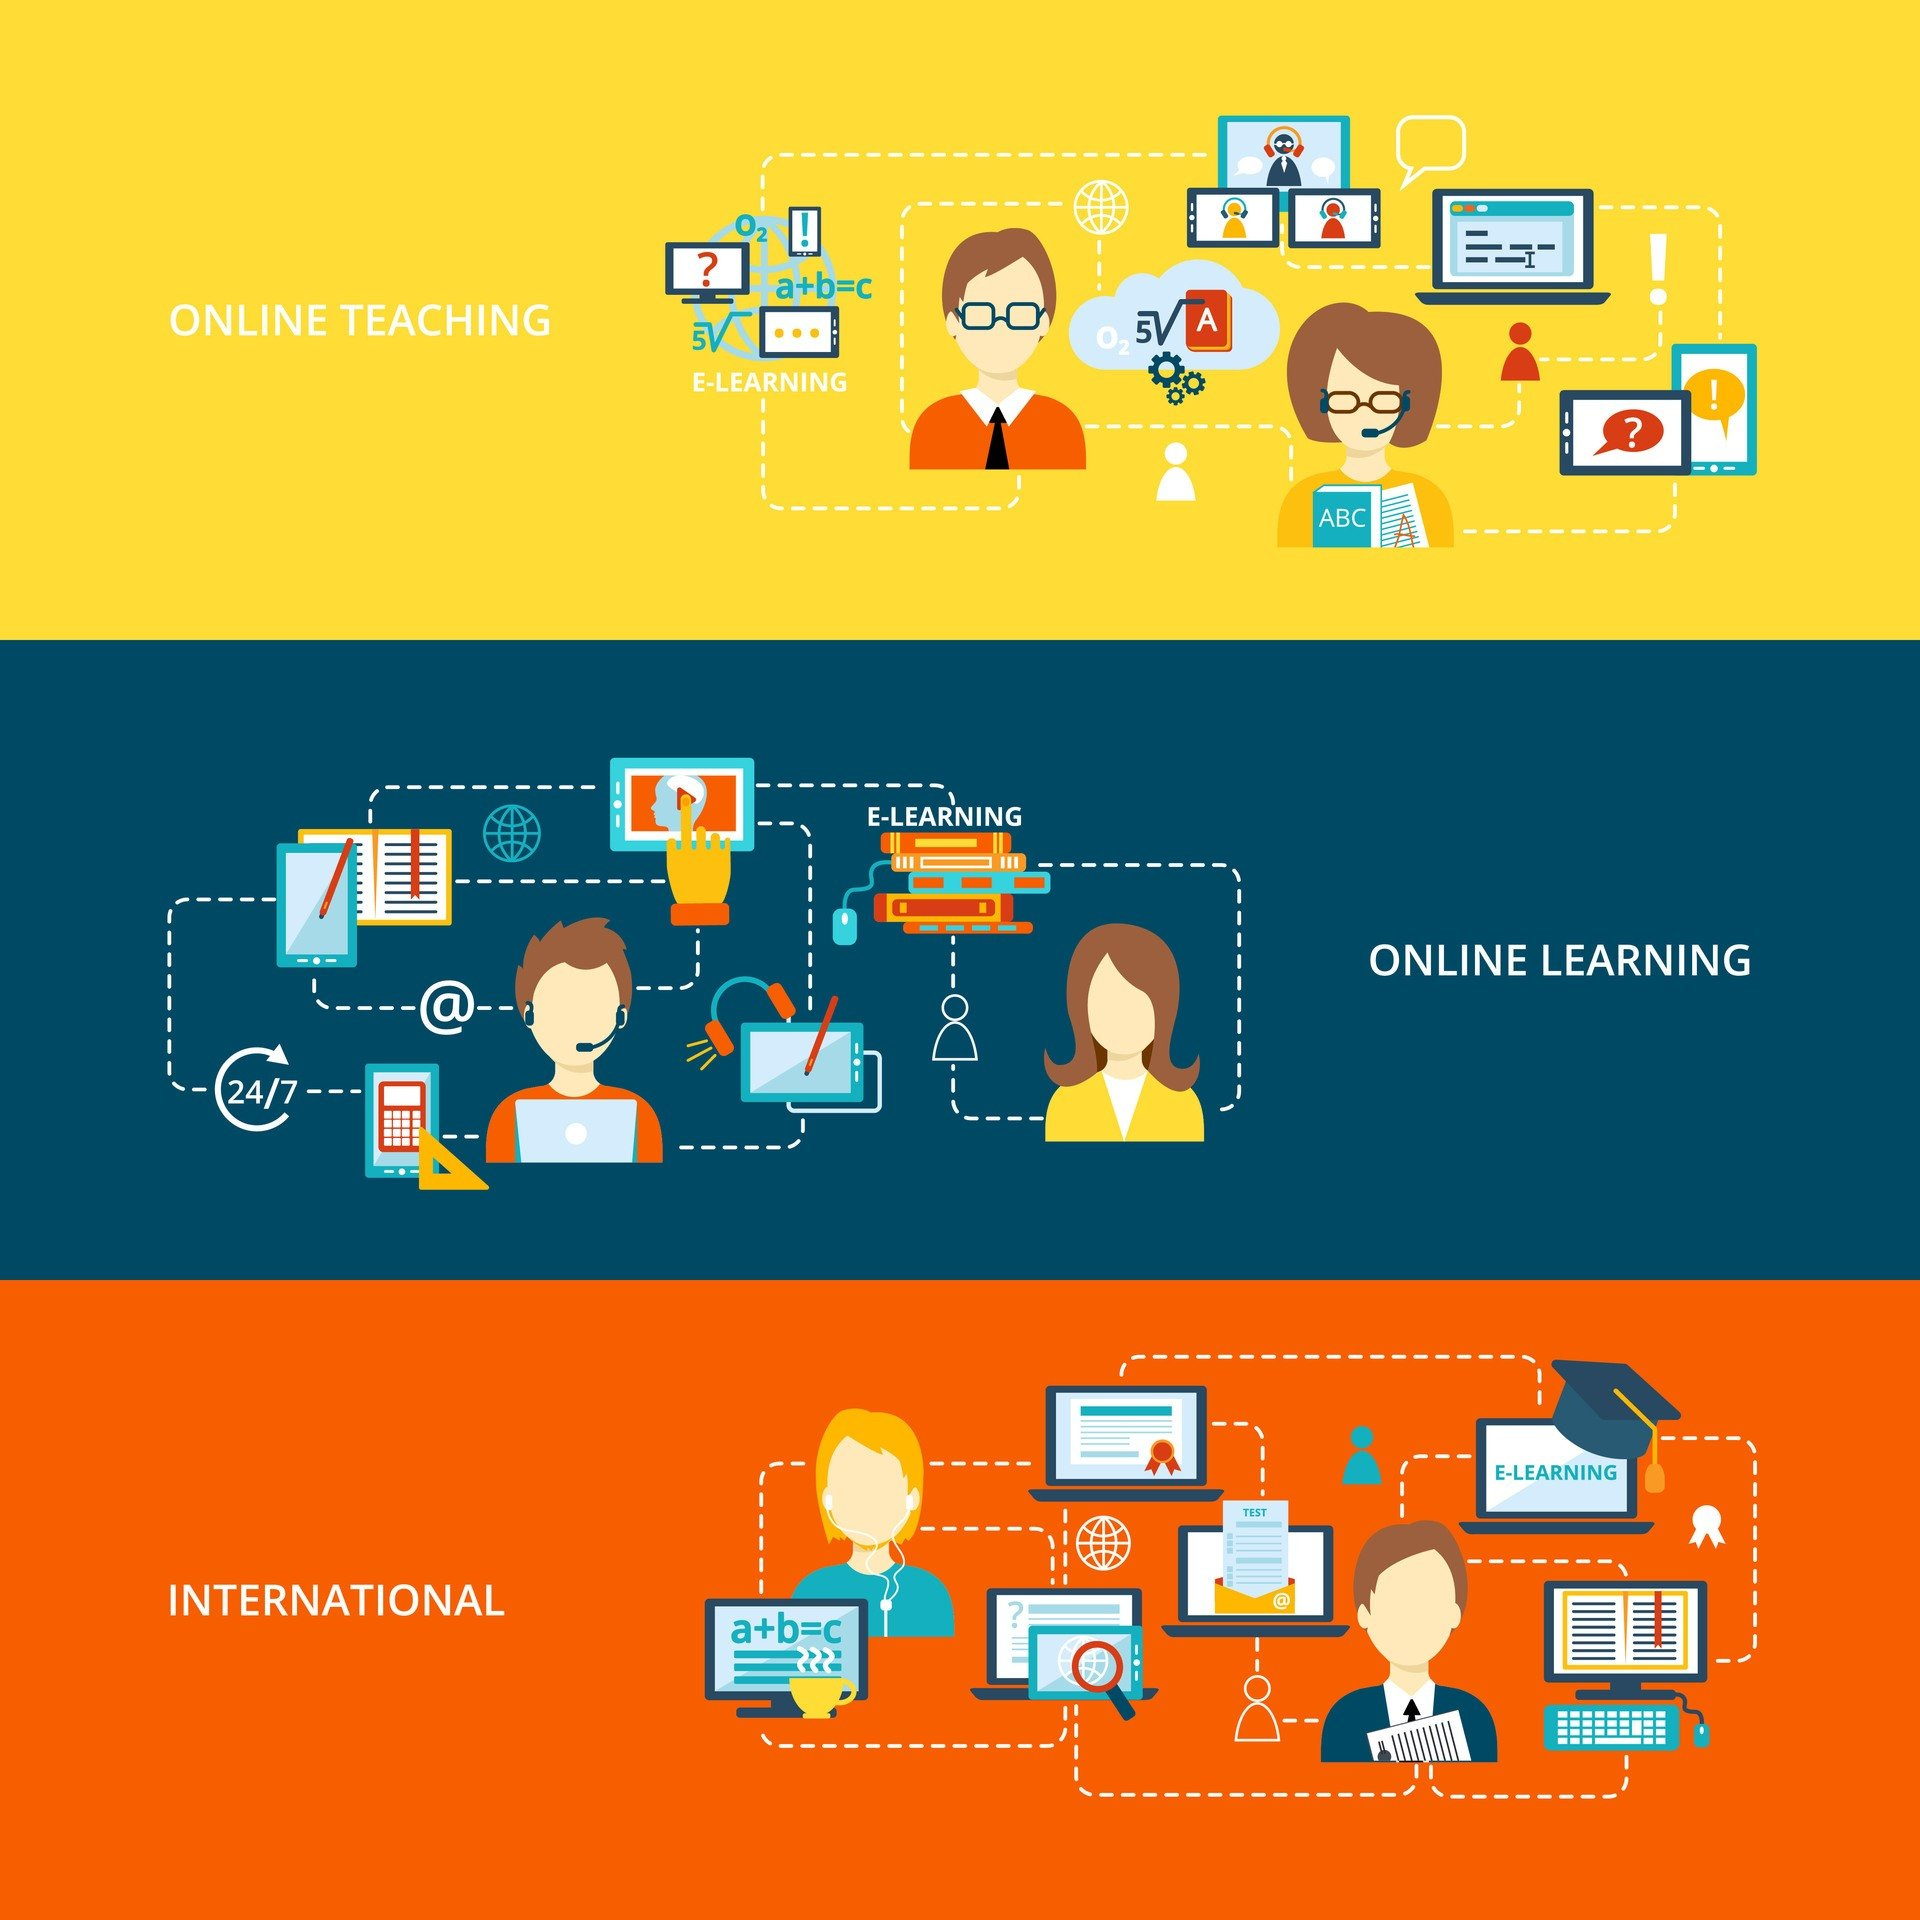 Online Learning And Teaching: Why Teachers Are Critical To Students' Success